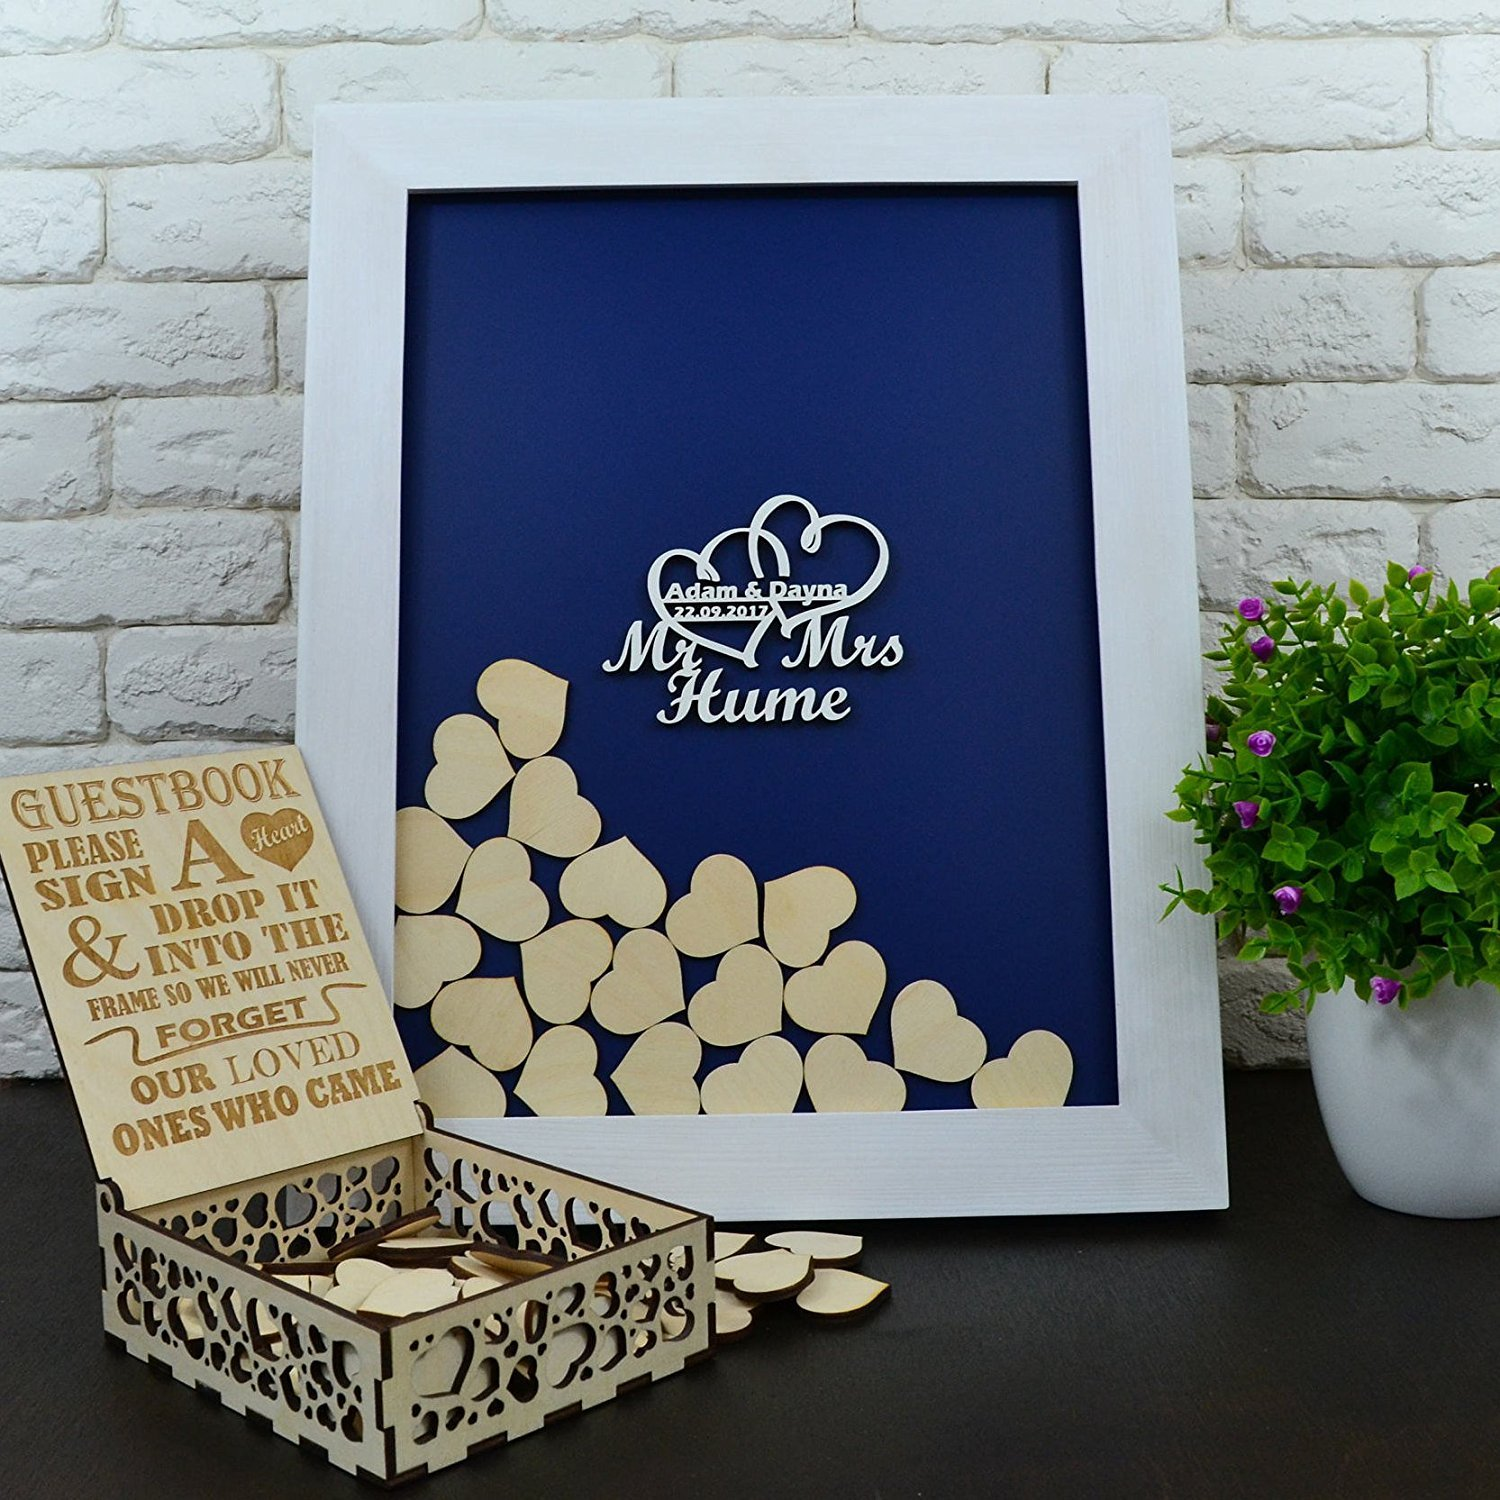 Tamengi Wedding Guest Book Frame,Custom Drop Top Guestbook,Wedding Decoration,Personalized Guest Book for Signature,Wood Heart Guestbook with 150Pcs Wooden Hearts by Tamengi (Image #1)